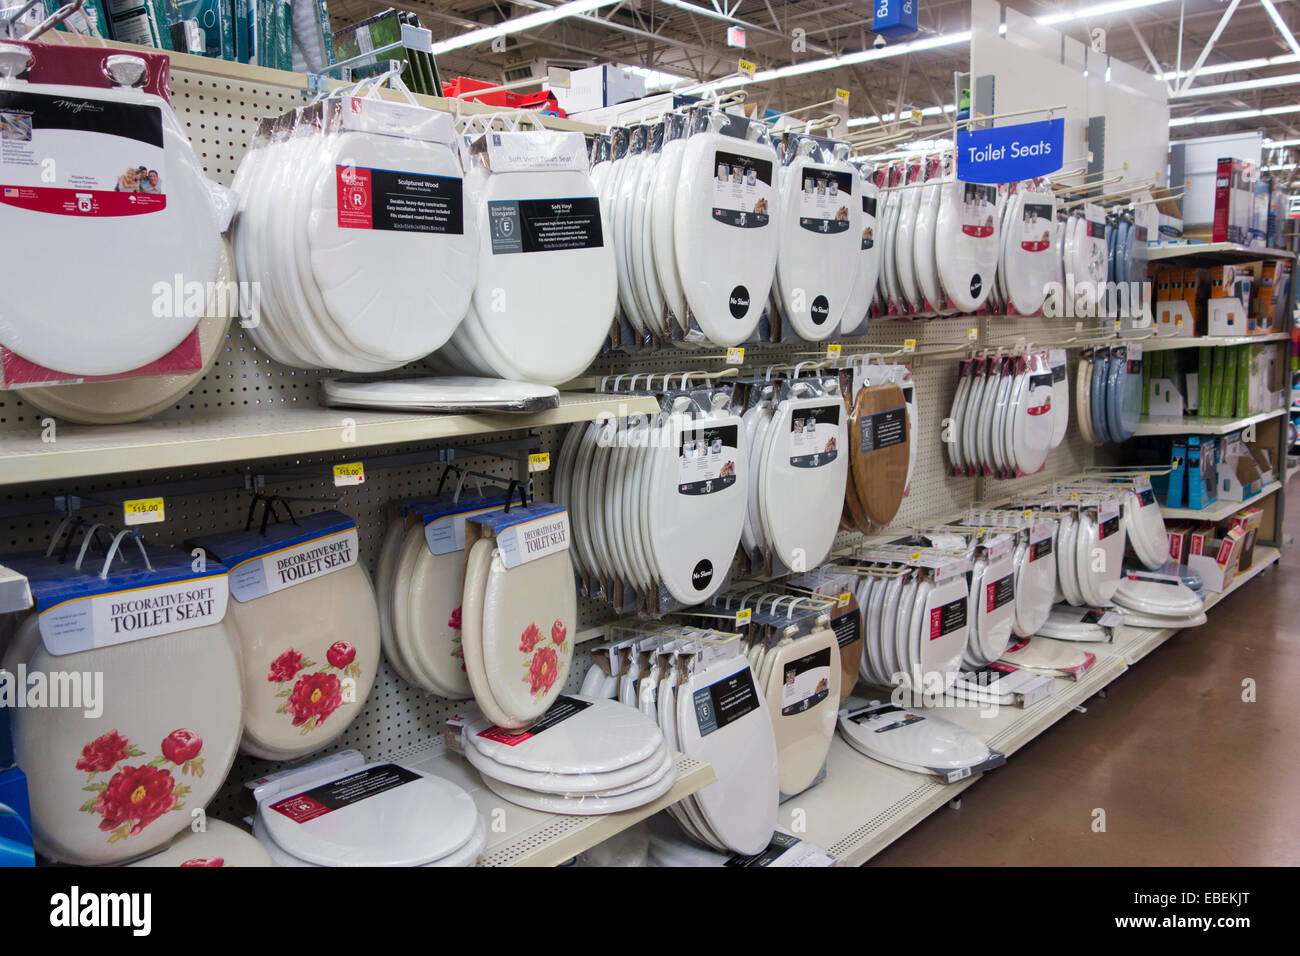 Marvelous Toilet Seat Covers In Walmart Store Stock Photo 75925440 Dailytribune Chair Design For Home Dailytribuneorg